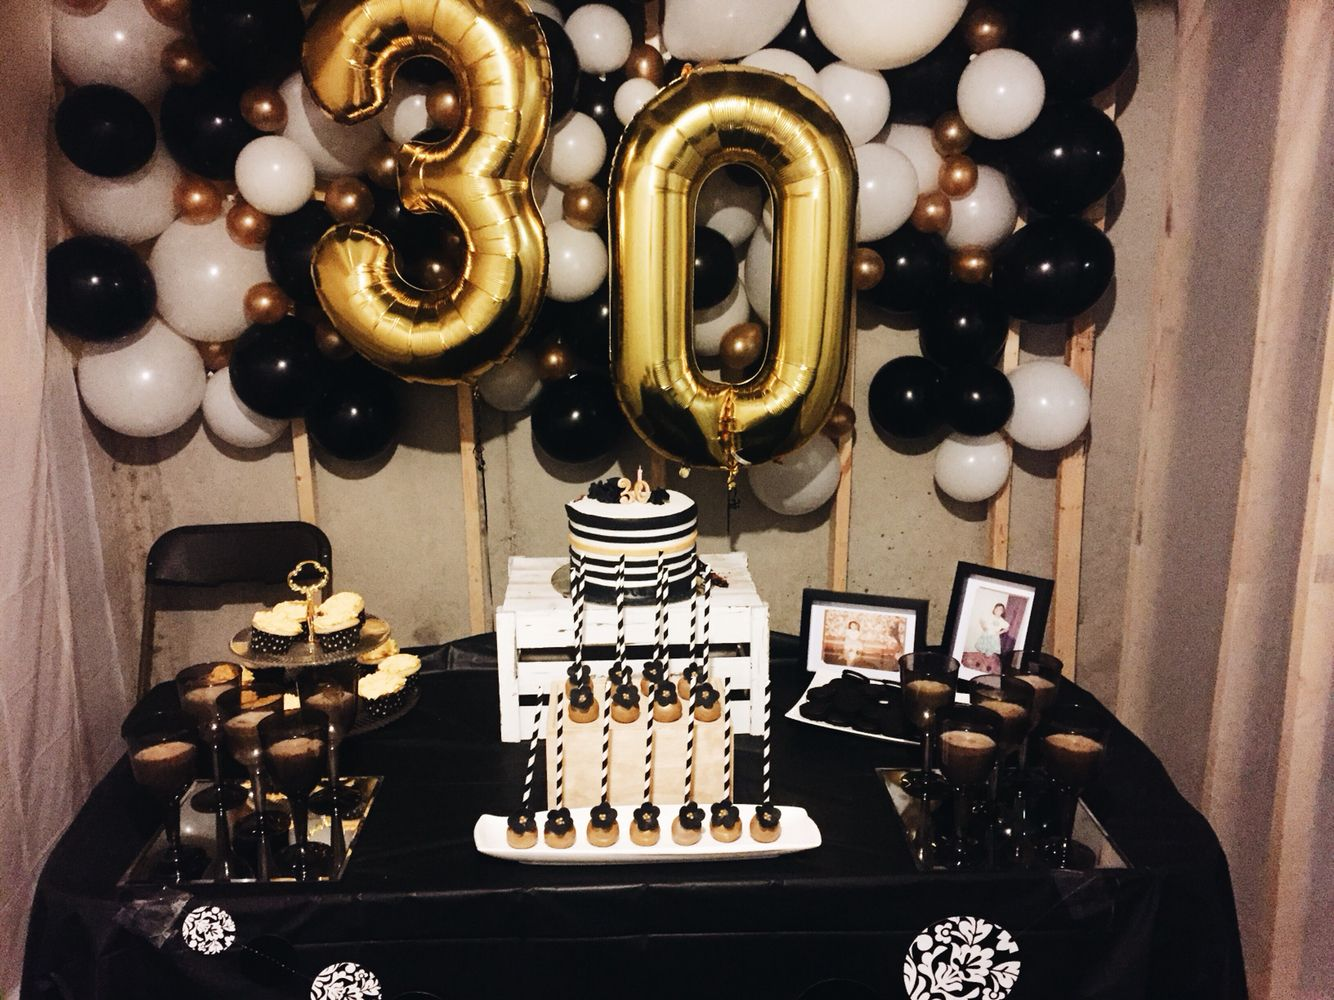 Surprise 30th Bday Party W Gold White And Black Decor Surprise 30th Birthday 30th Birthday Decorations 30th Birthday Themes